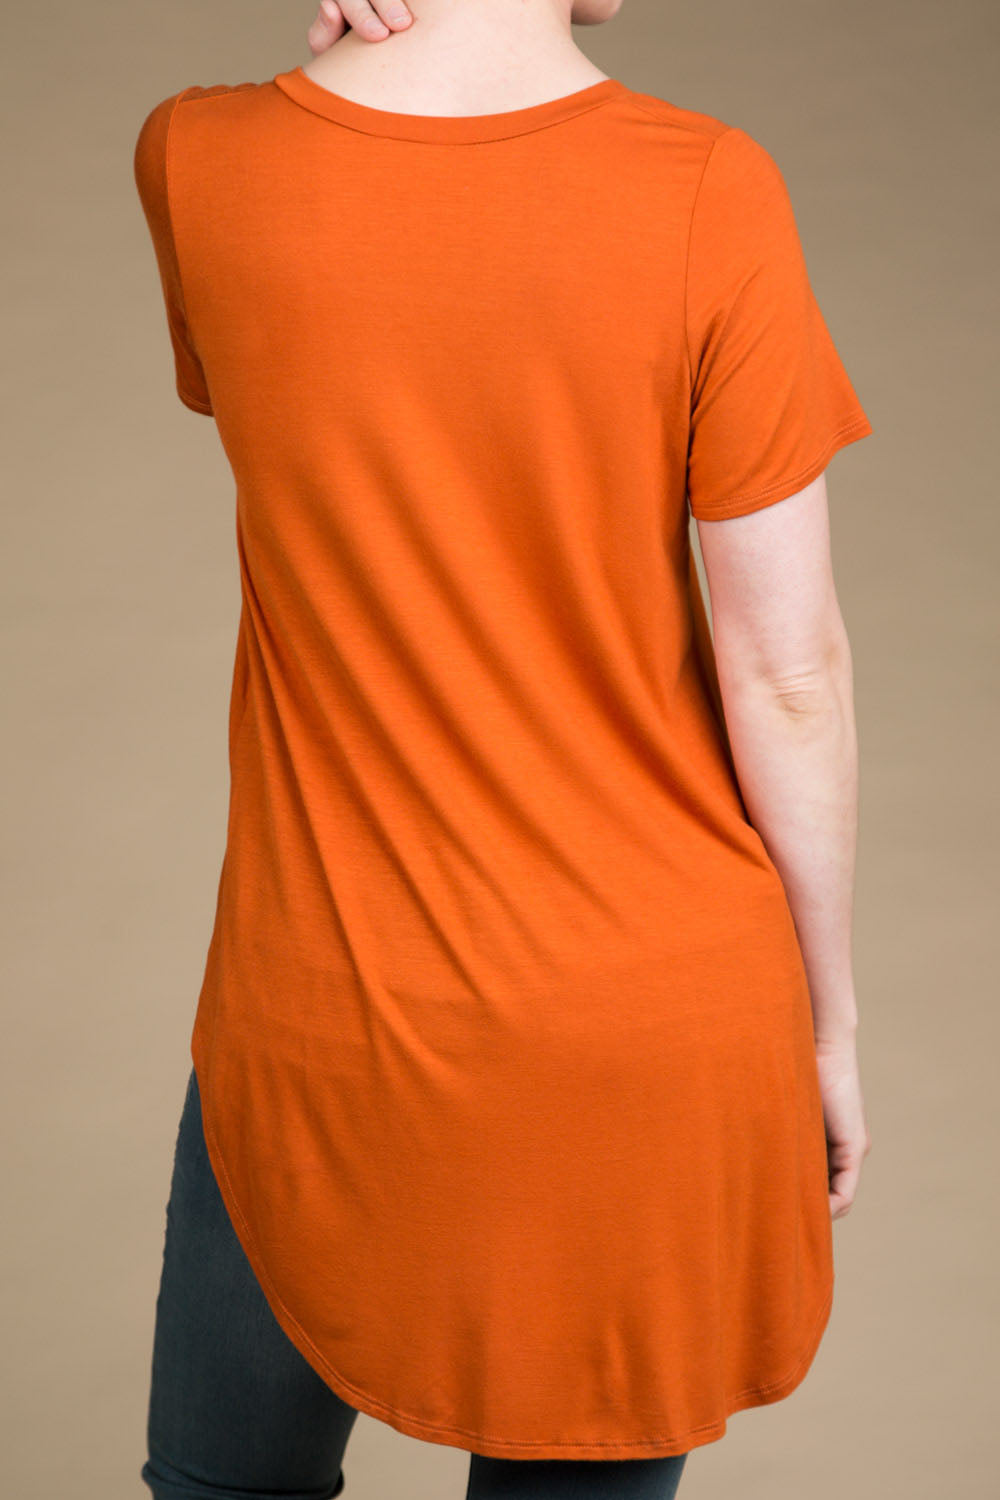 Type 3 Robust Orange Top